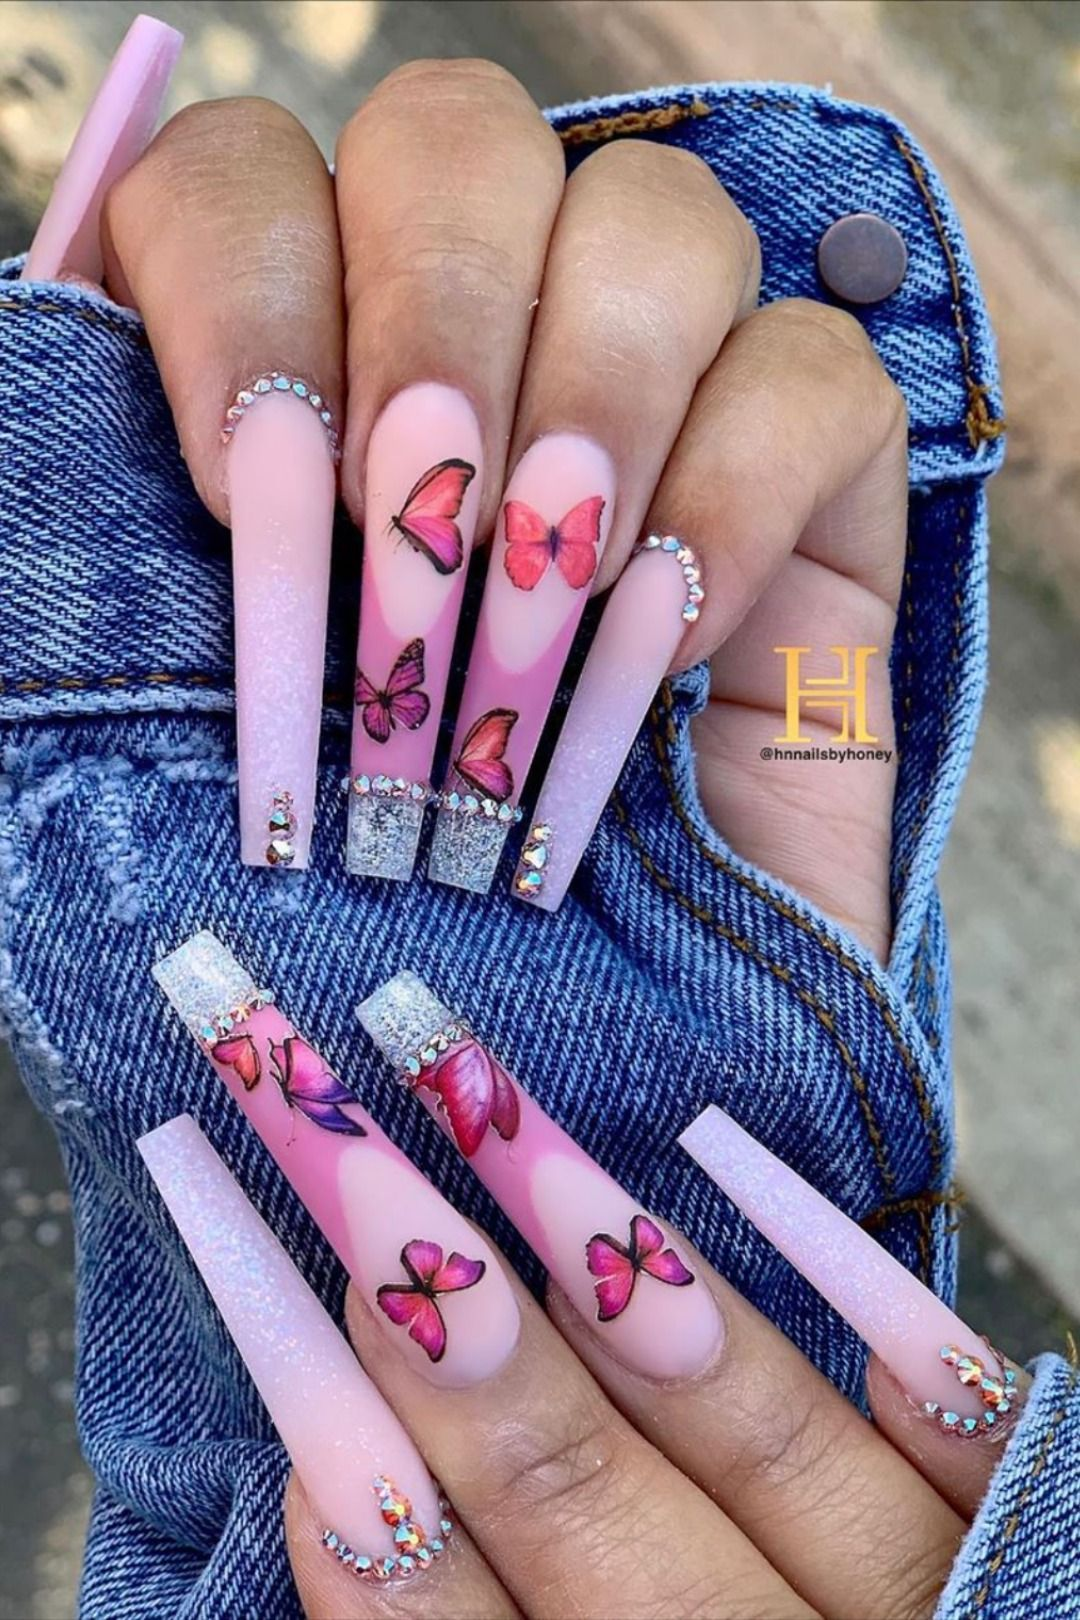 Cute Spring Long Coffin Nails Ideas Of 2020 Stylish Belles In 2020 Long Acrylic Nail Designs Bling Acrylic Nails Coffin Nails Long